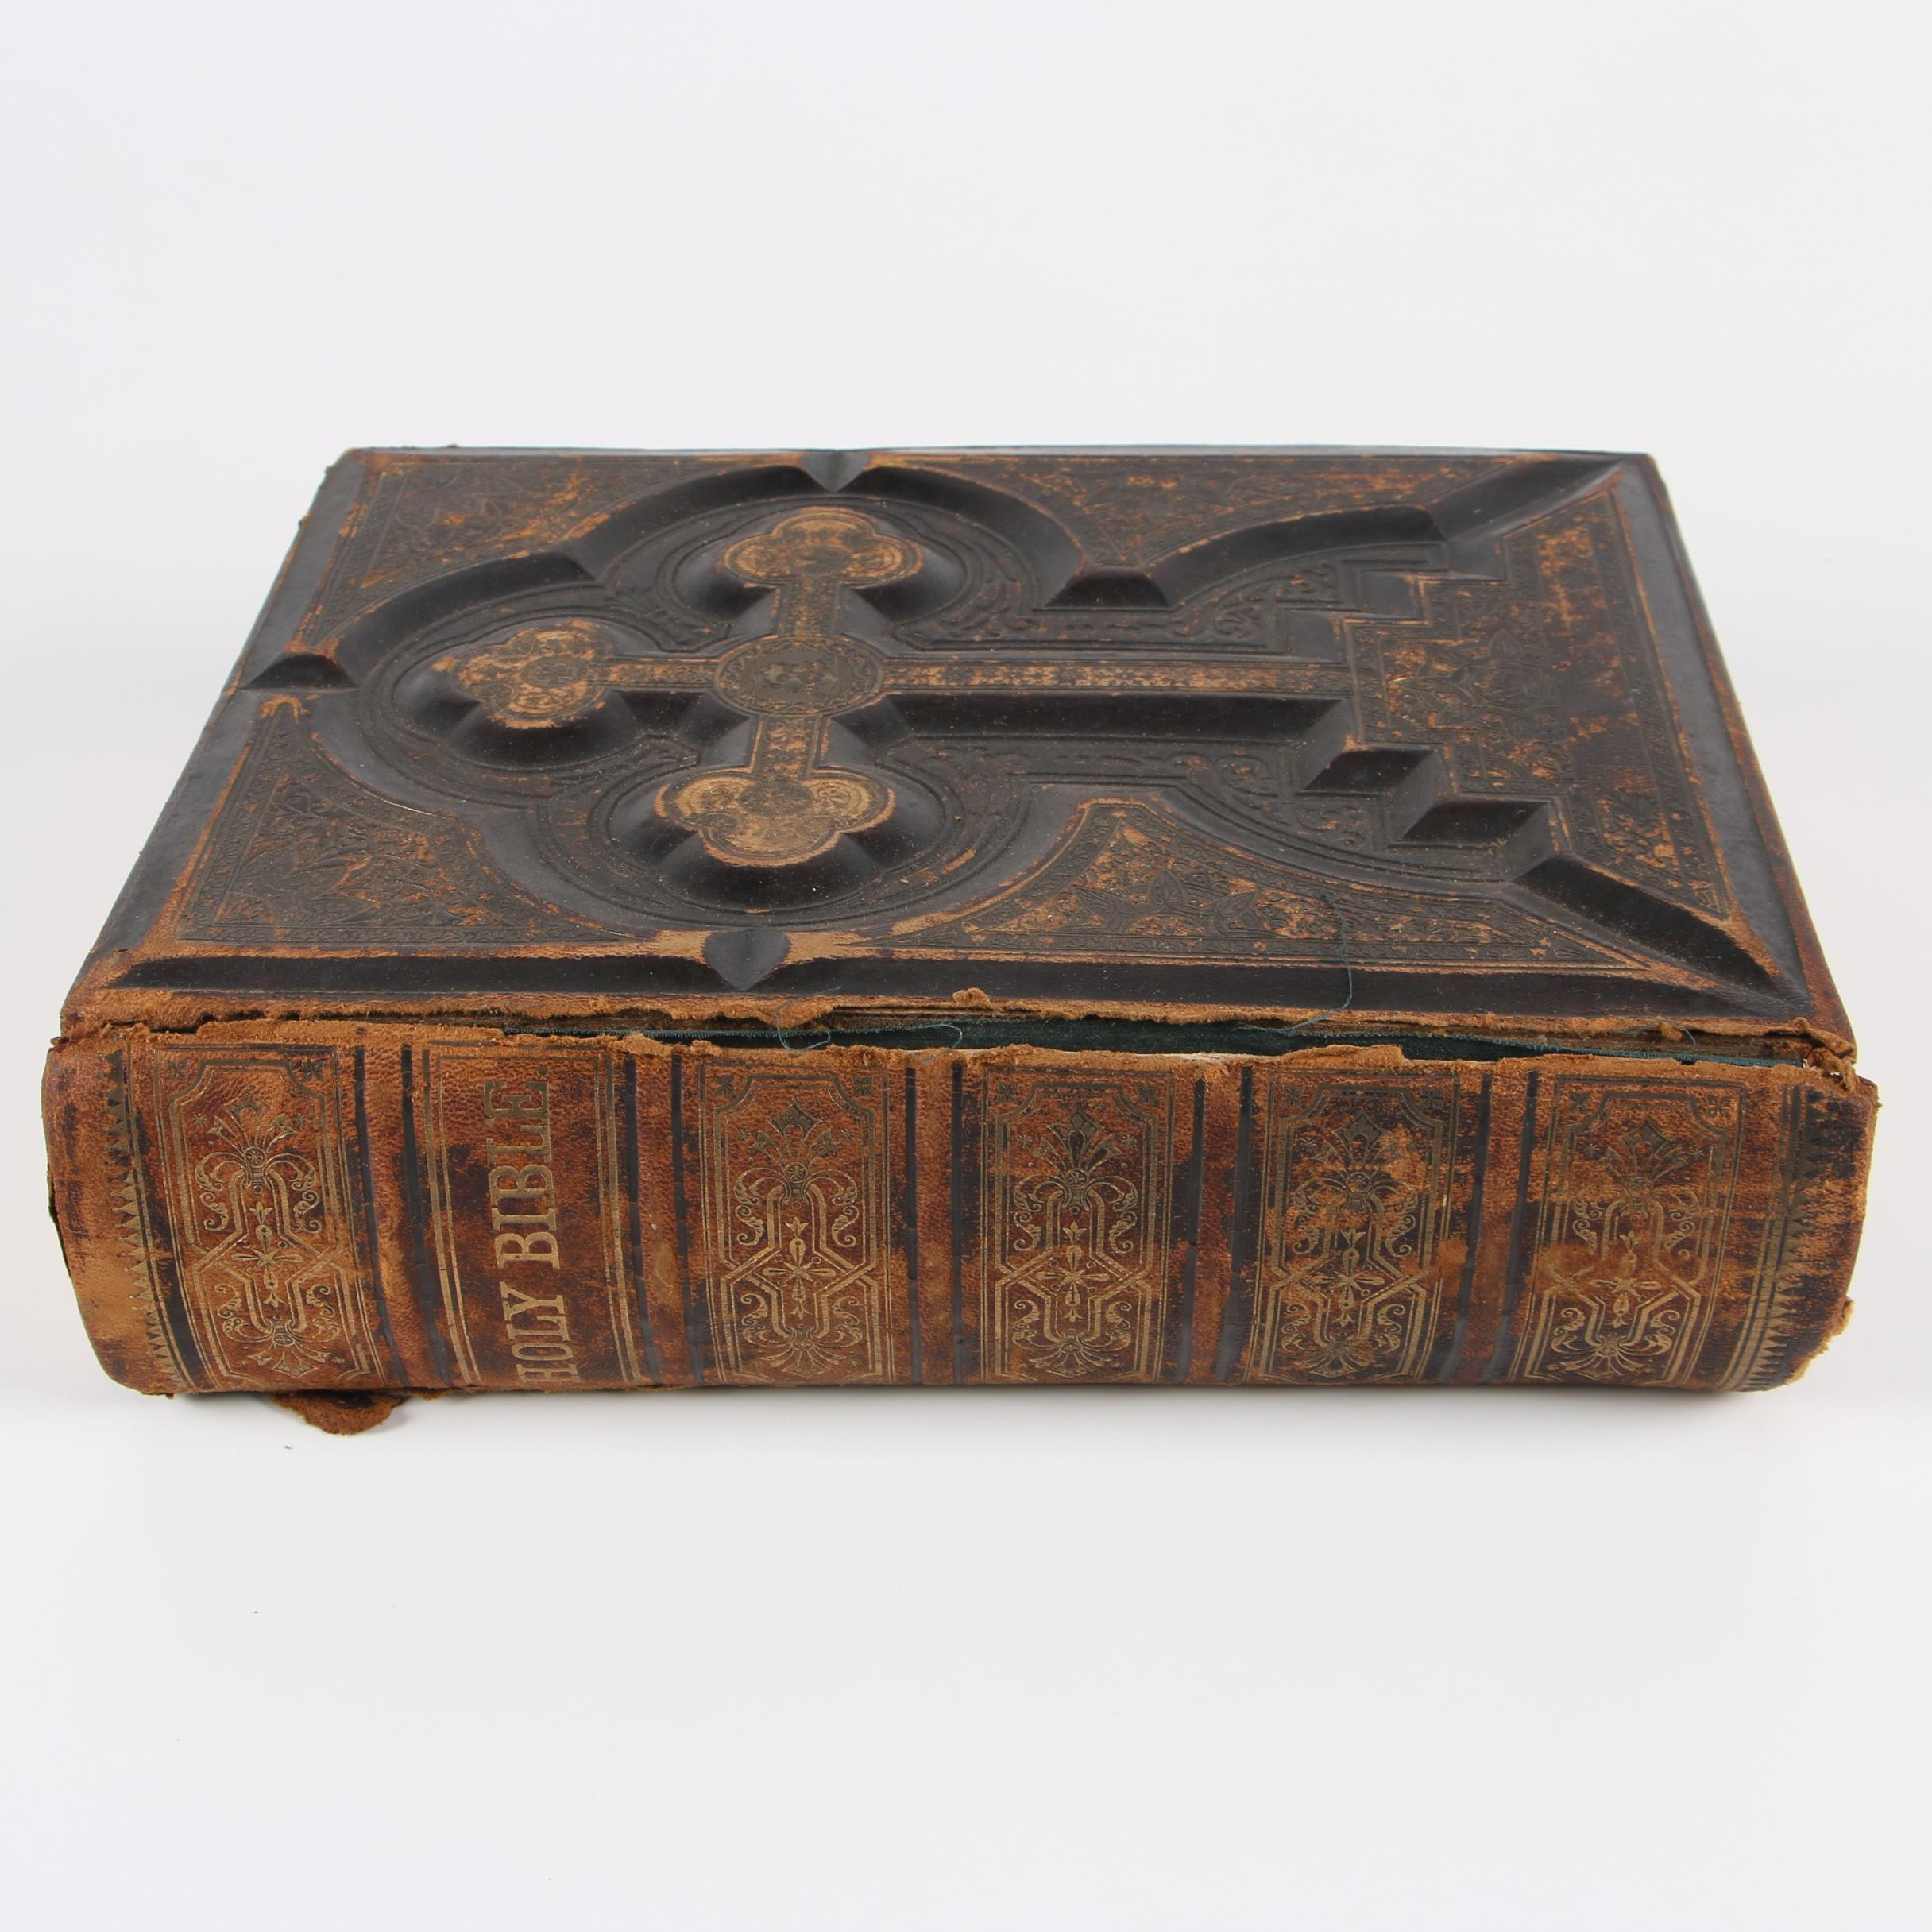 Circa 1880 Catholic Gilt and Embossed Leather Bound Bible